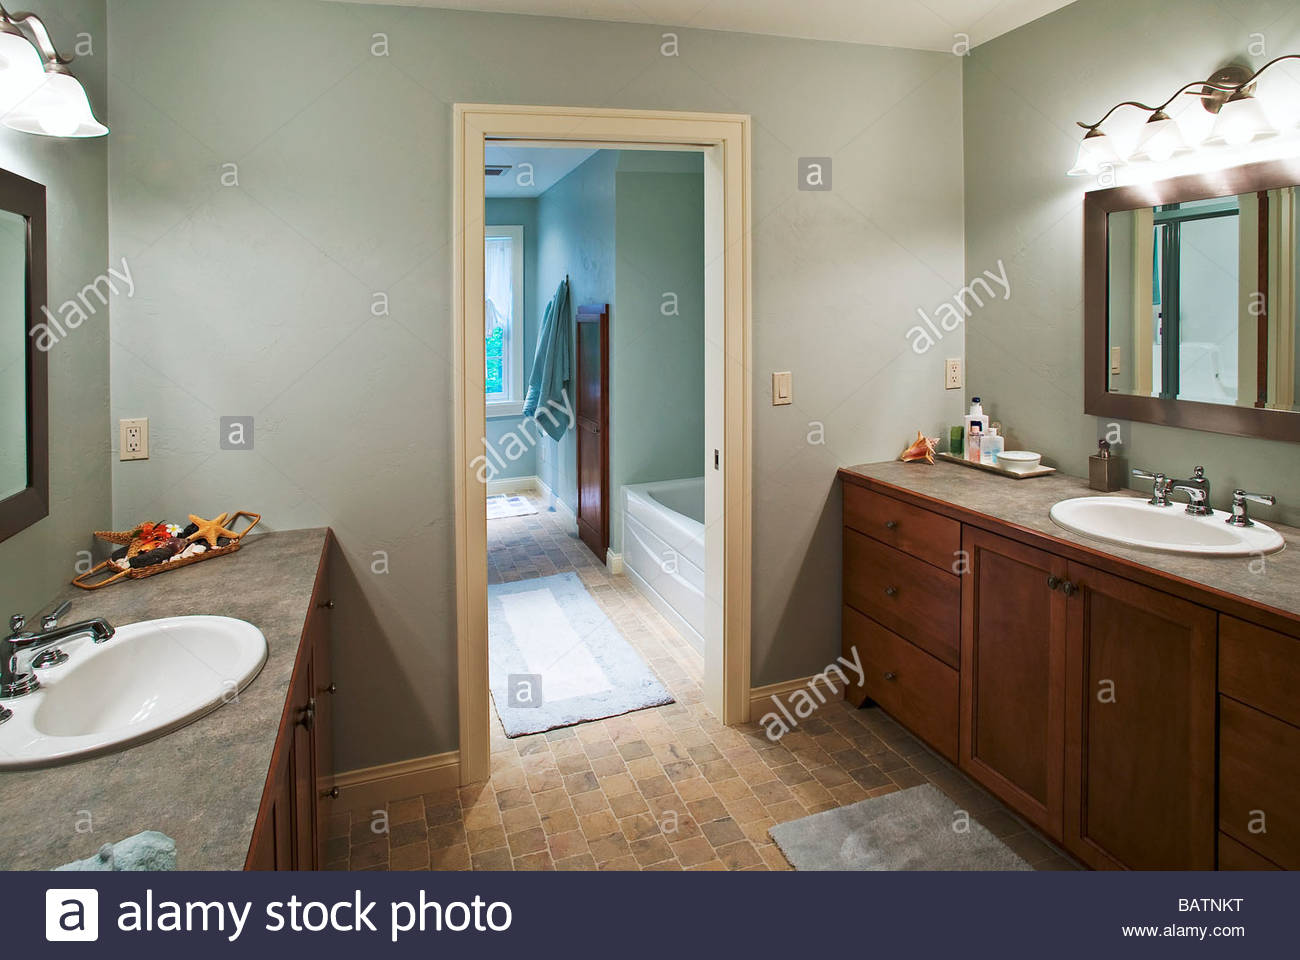 Modern bathroom with double sinks - Stock Image